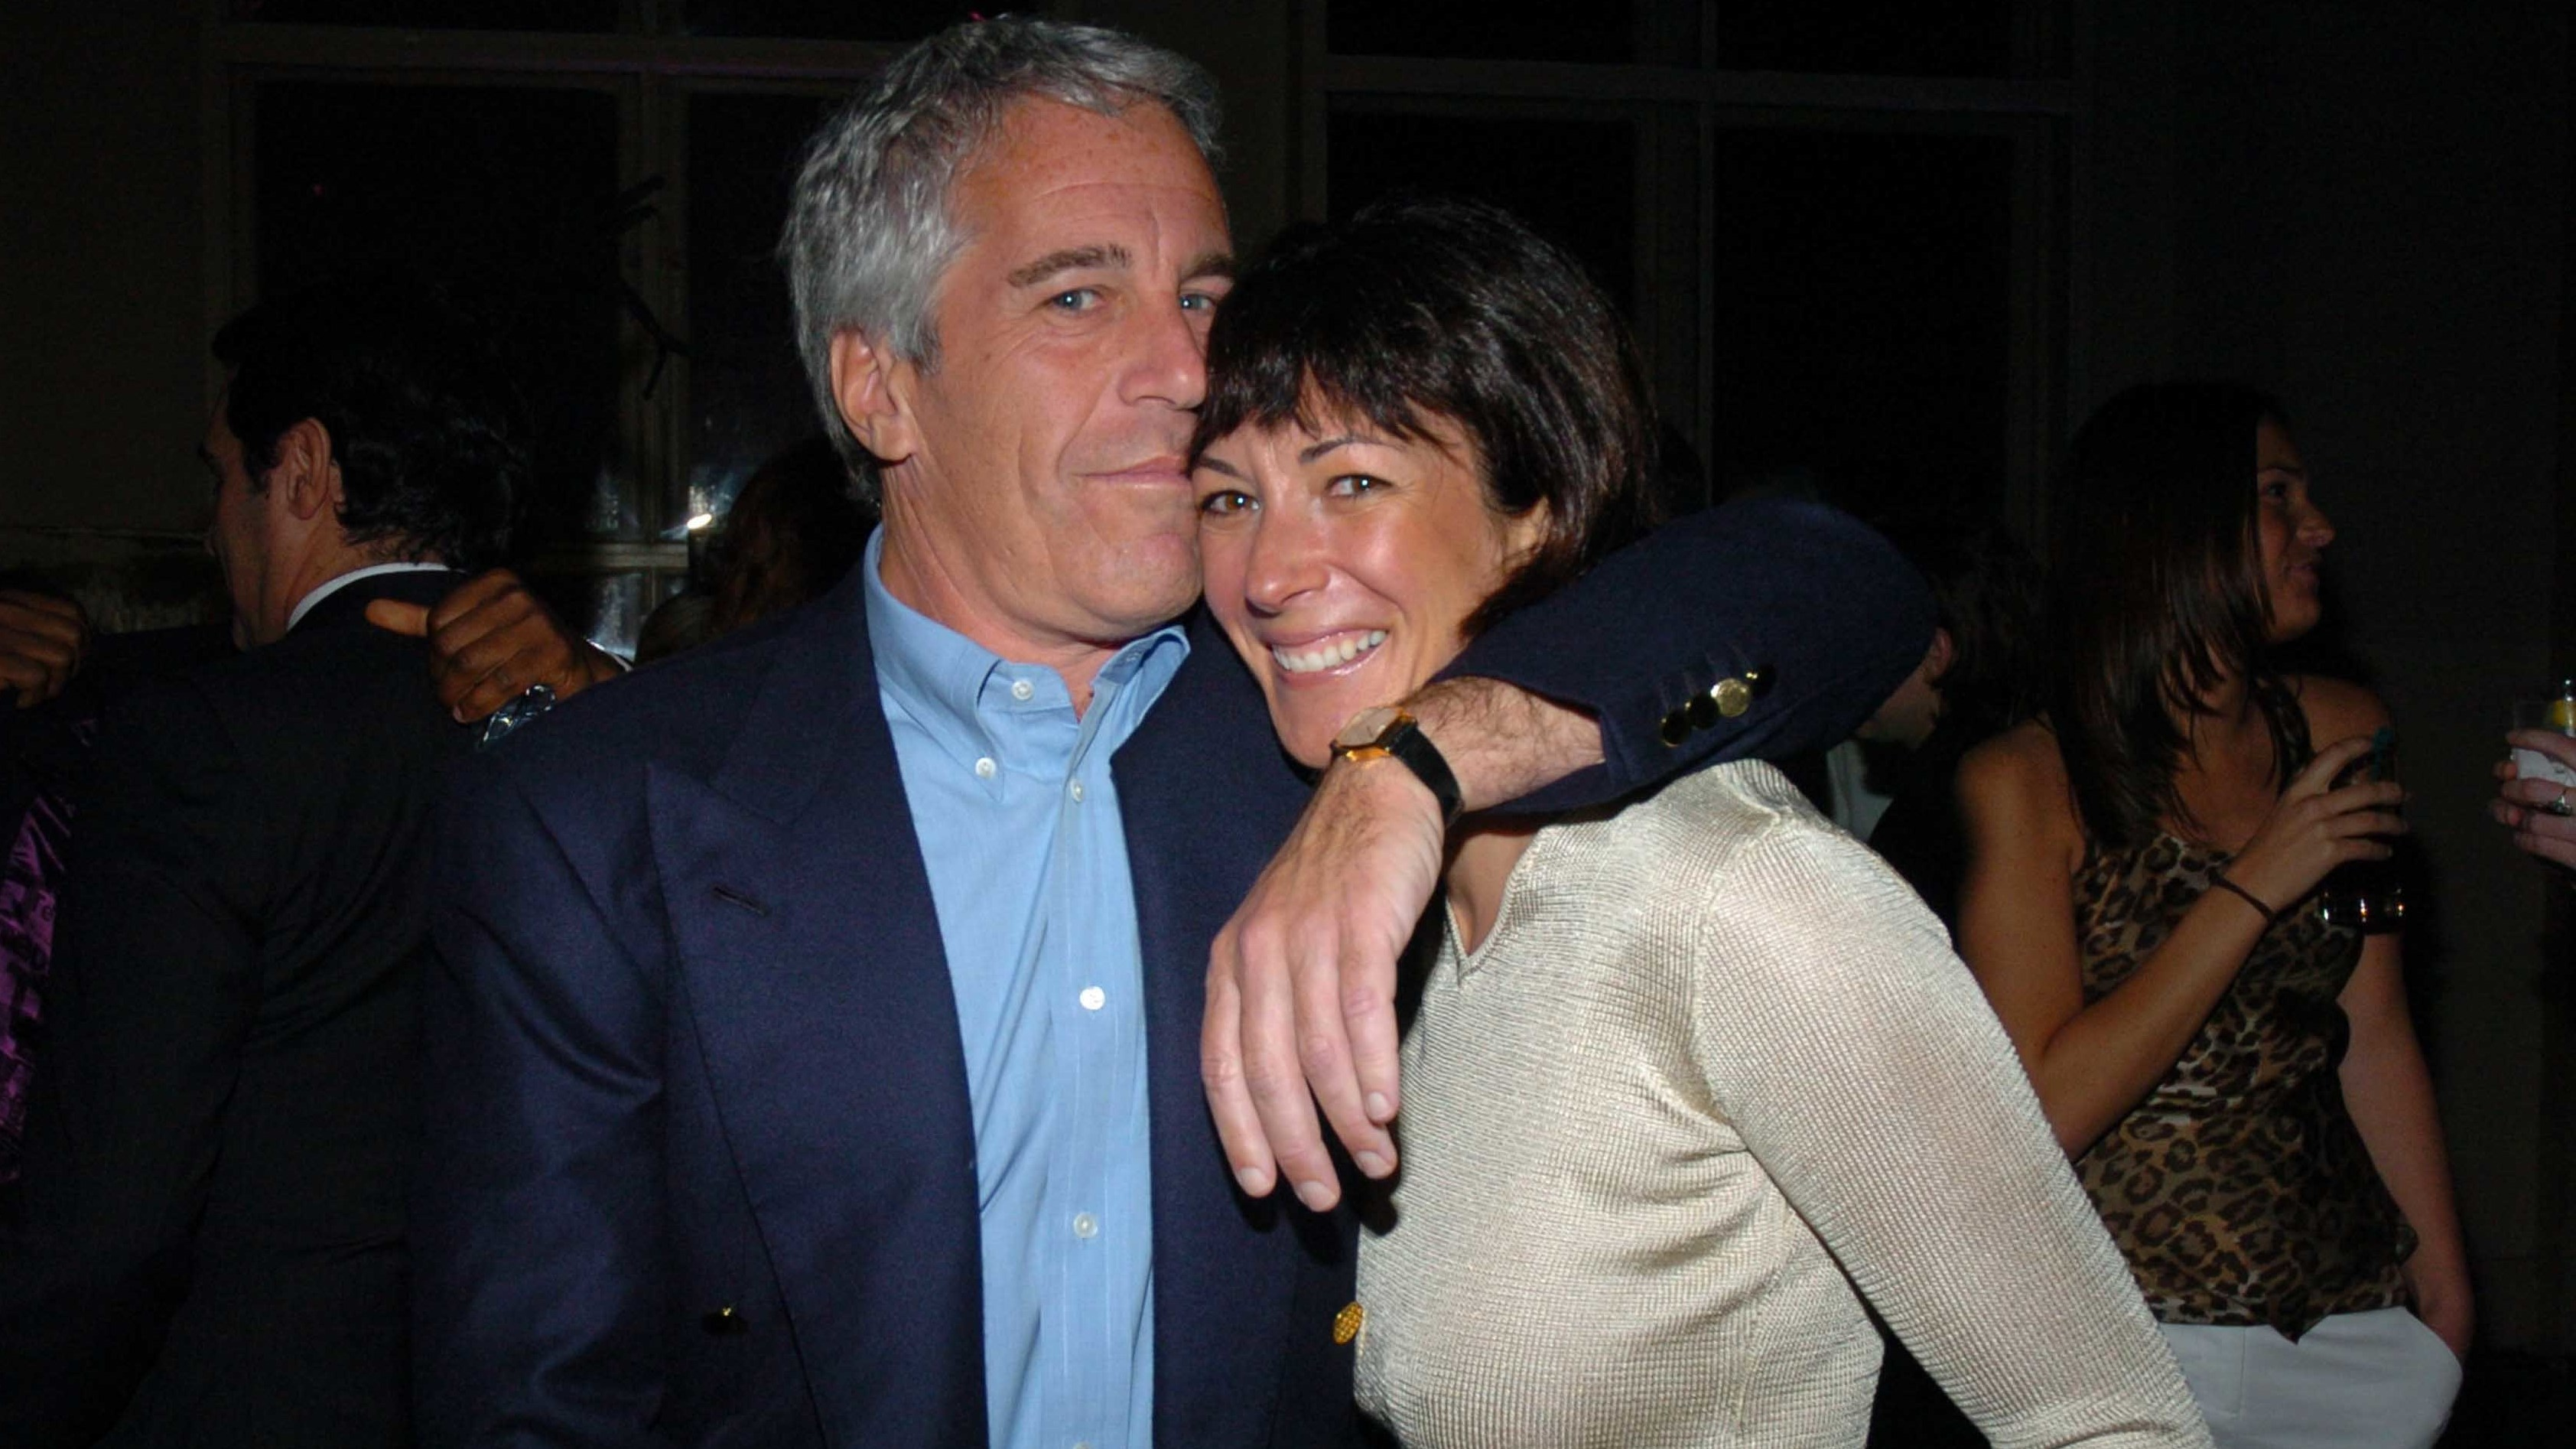 Jeffrey Epstein associate Ghislaine Maxwell arrested on sex-trafficking charges